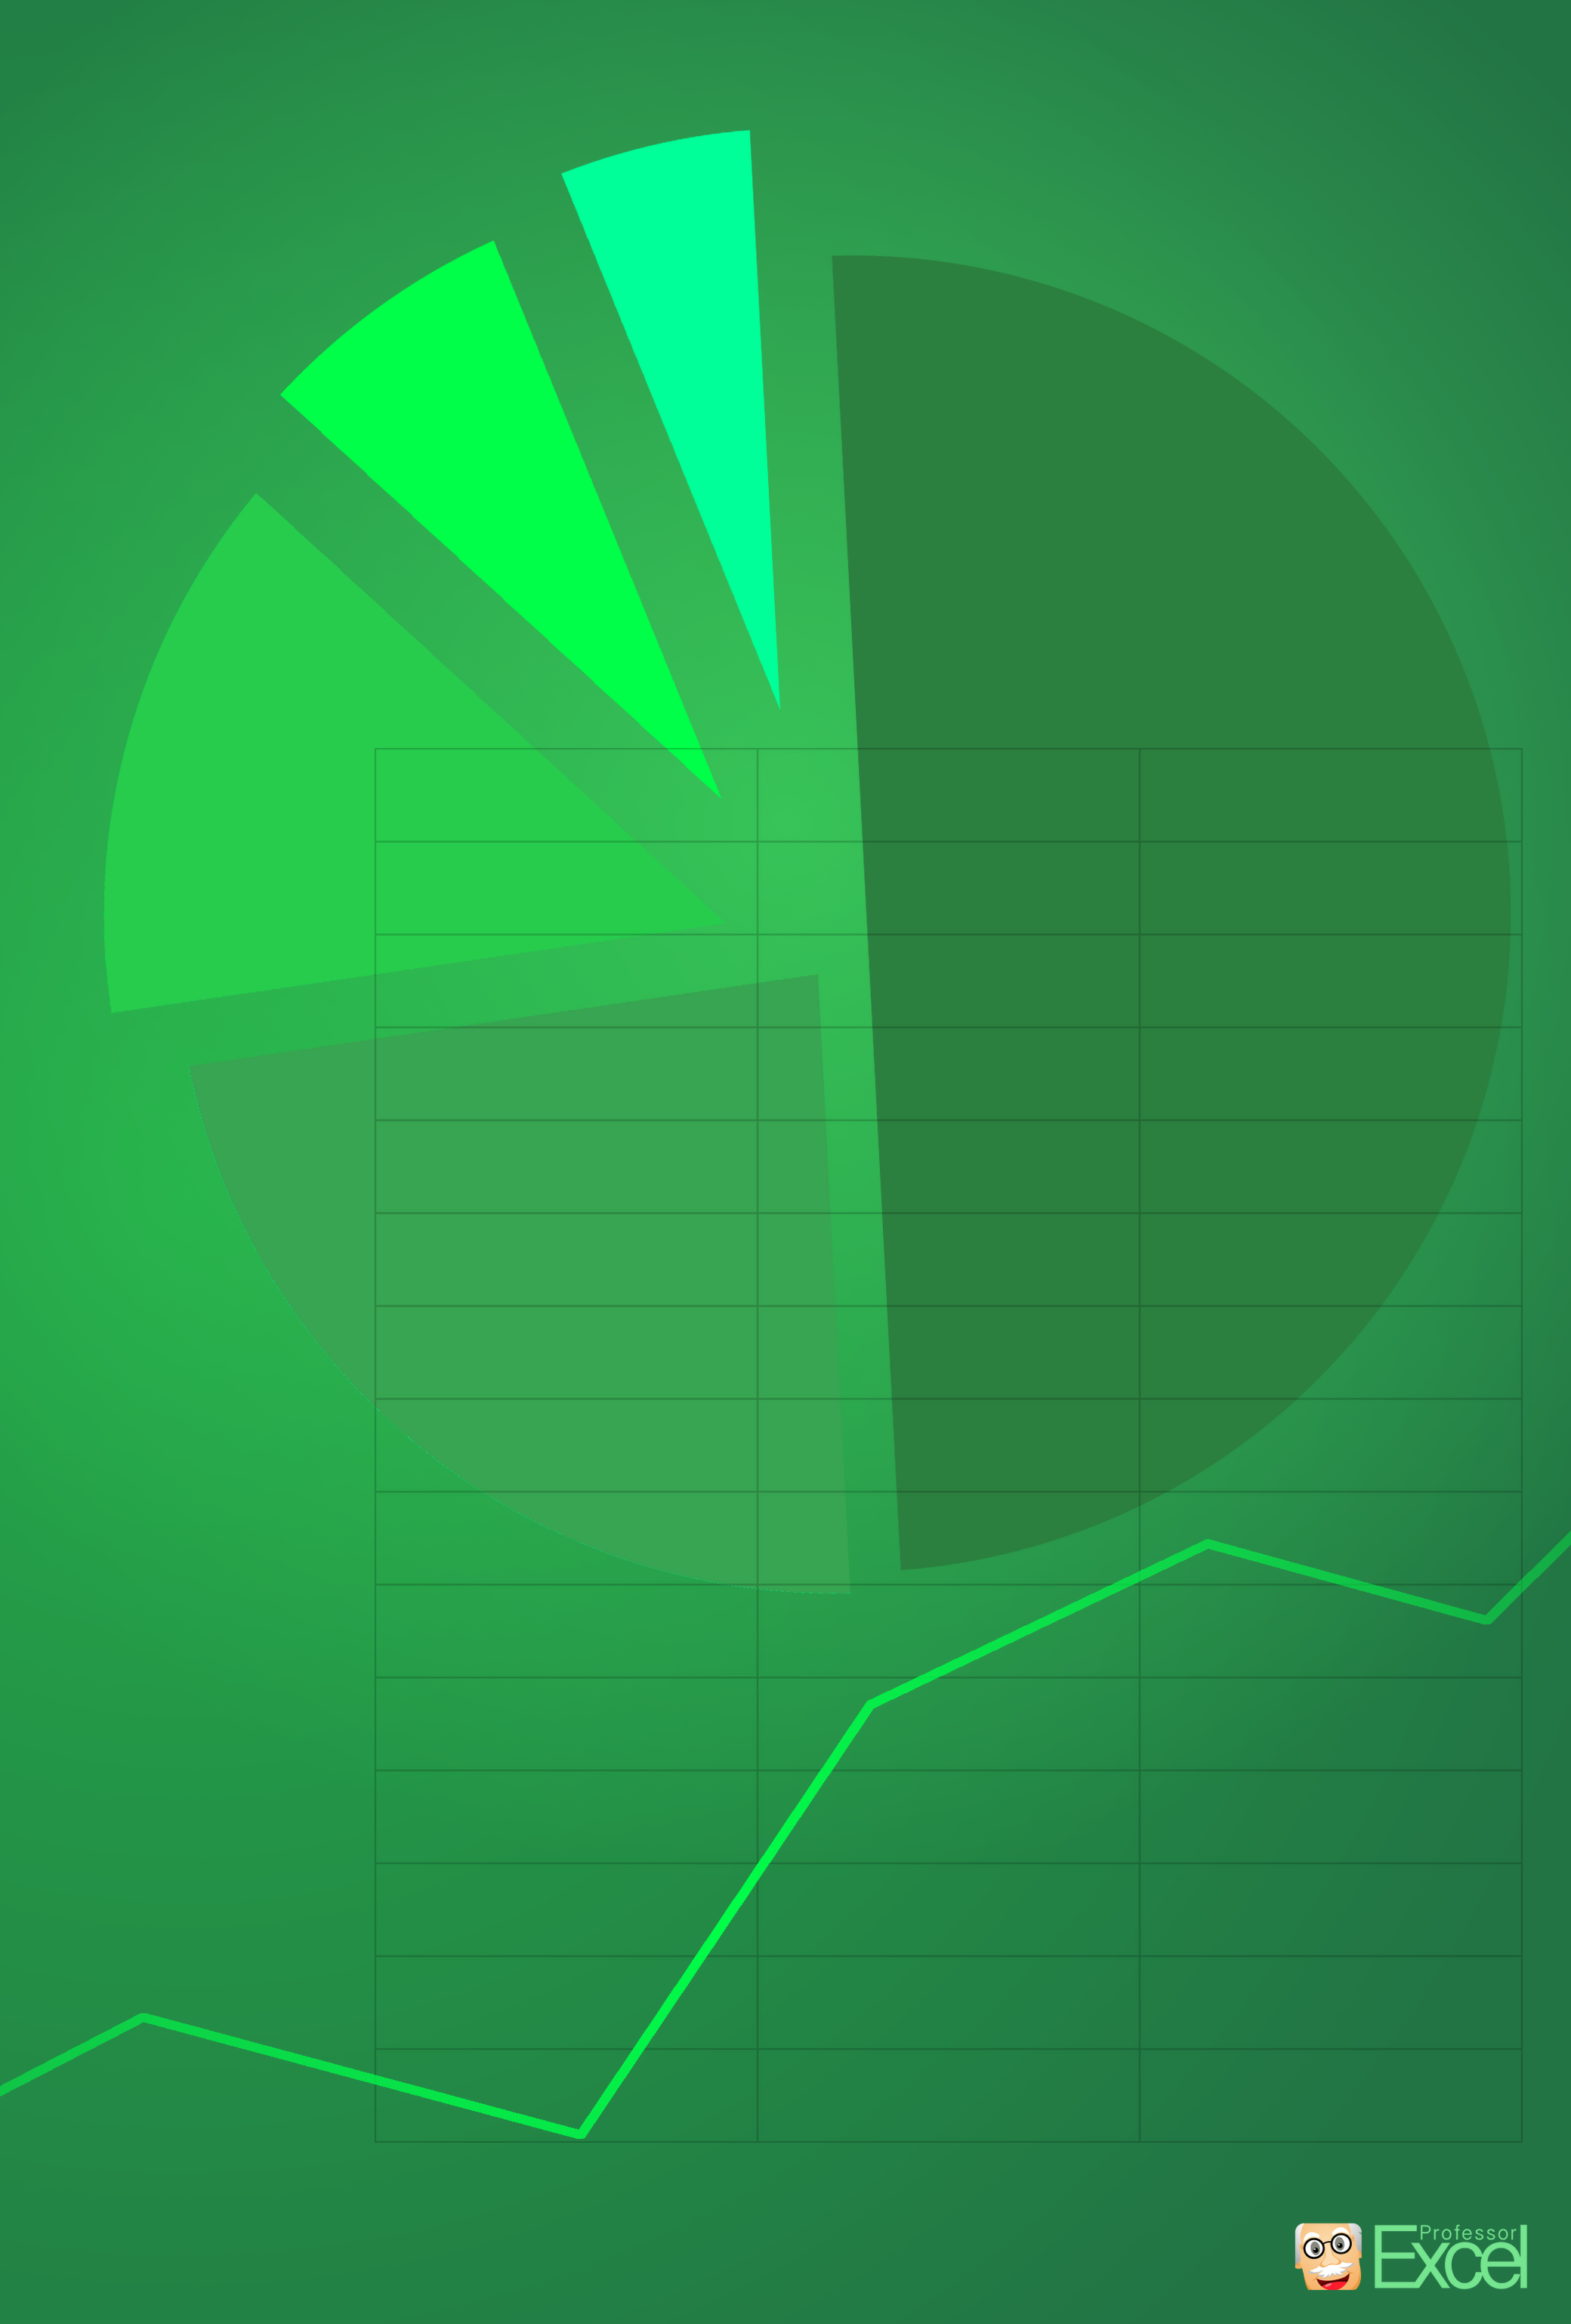 wallpaper excel graph mobile background green smartphone iphone